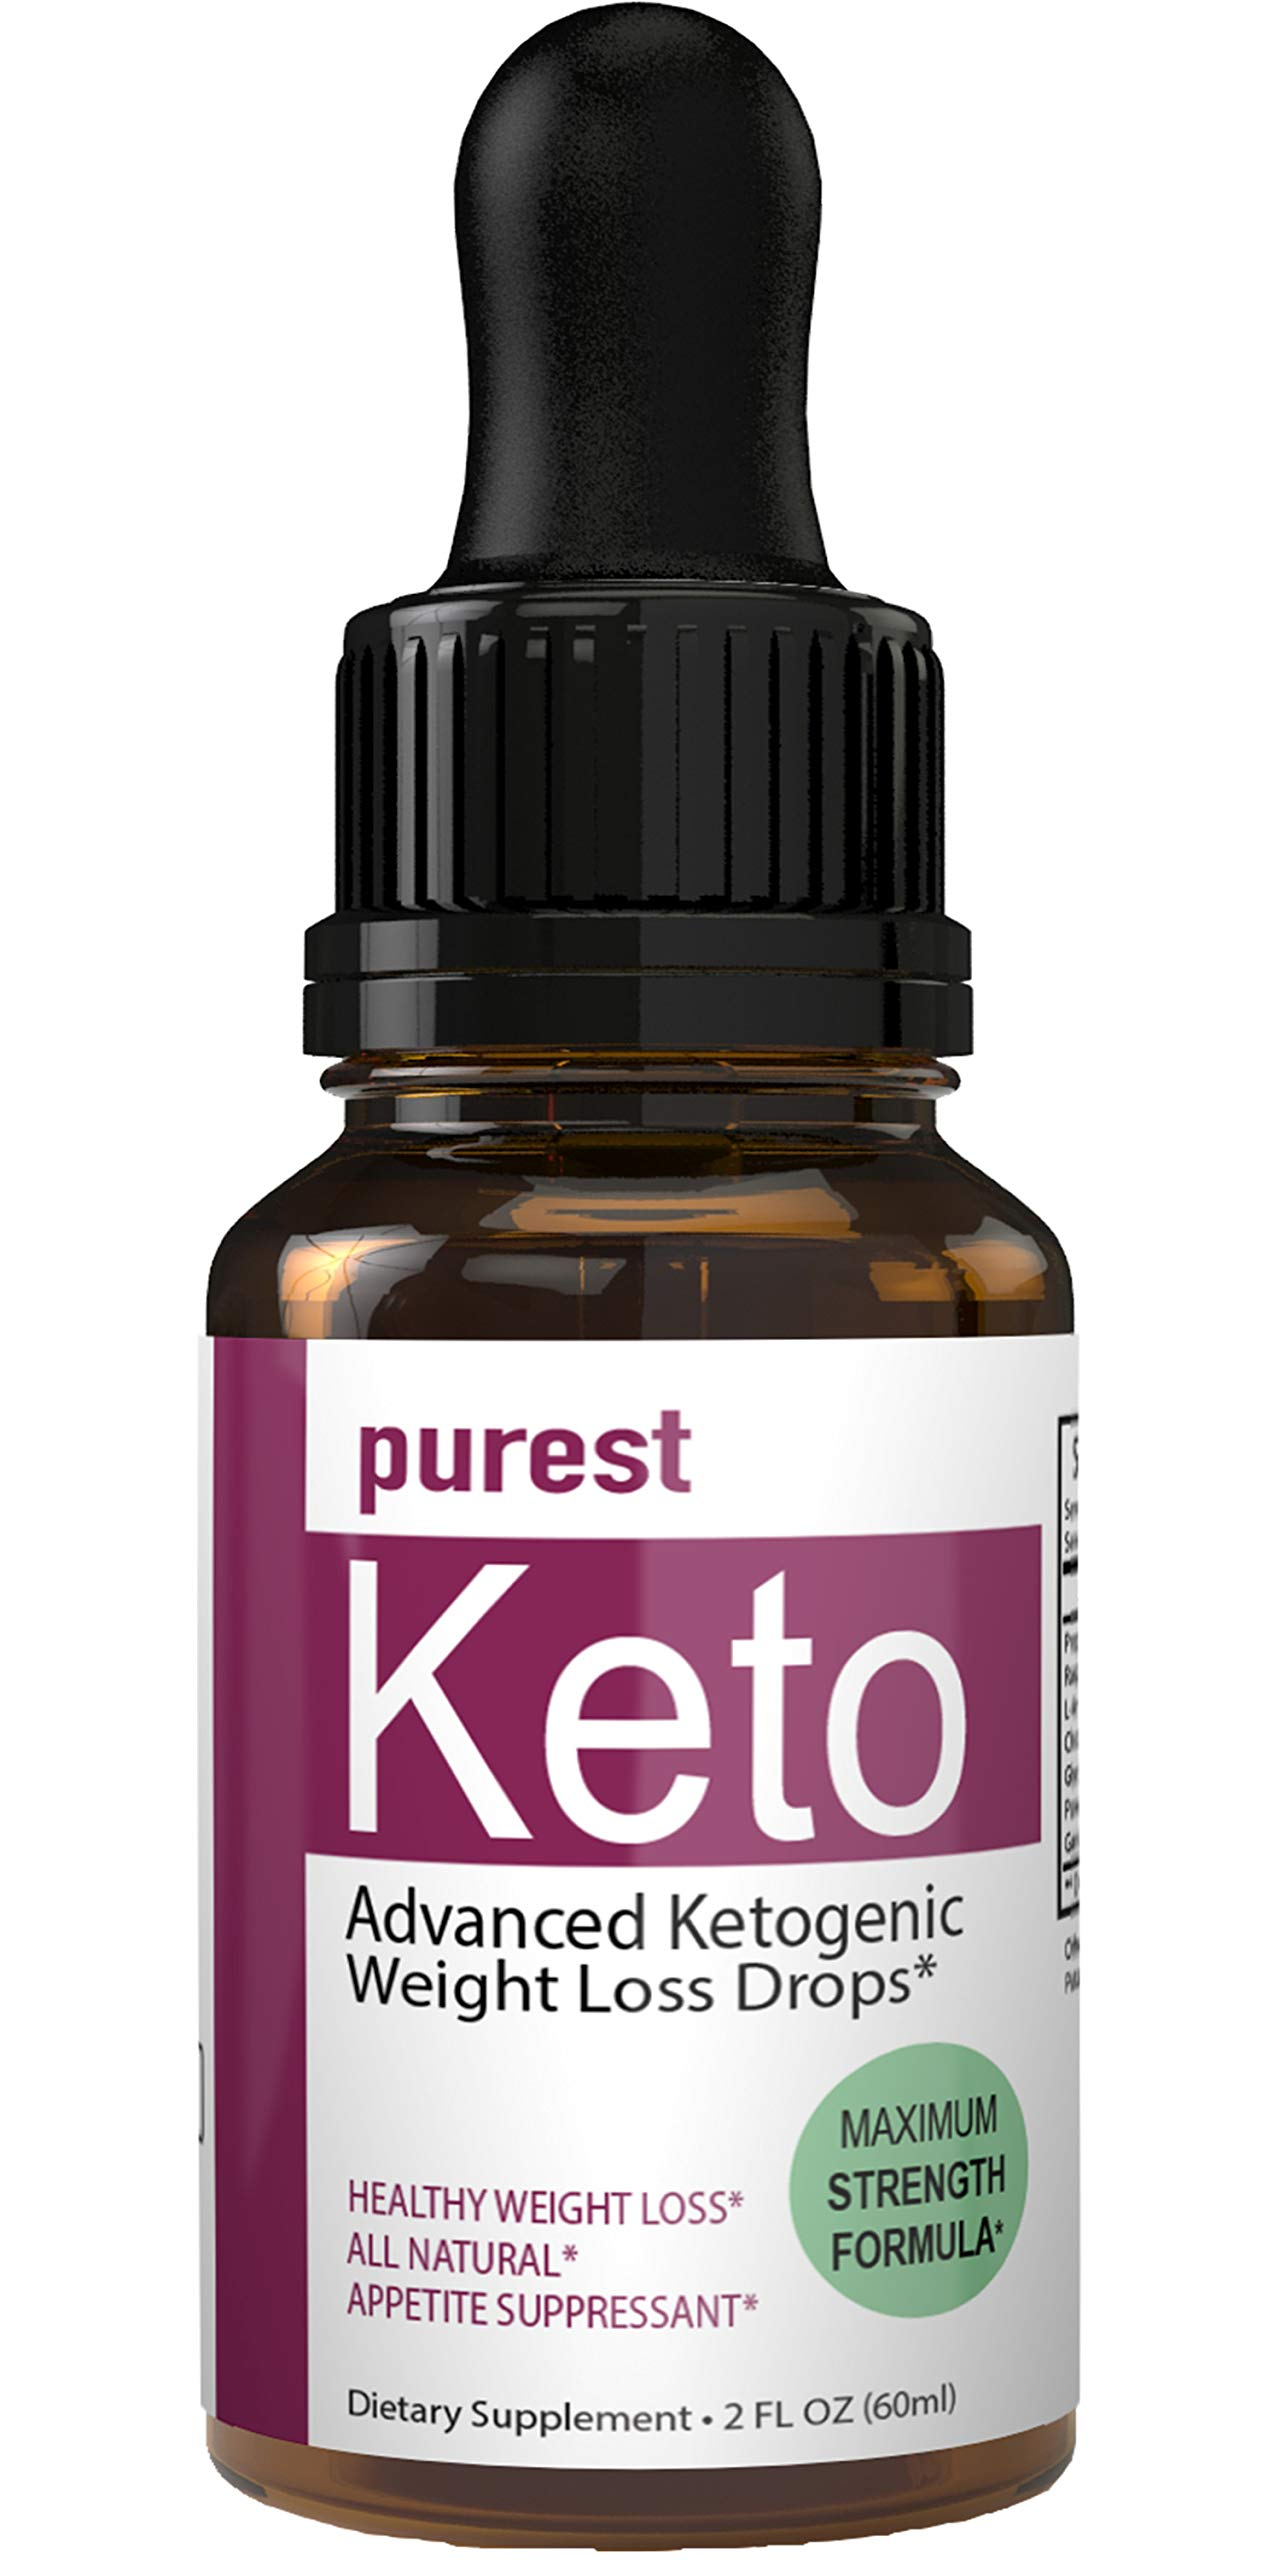 Purest Keto Appetite Suppressant Drops Liquid Fatburner Weight Loss Drops | Control Hunger Weight Loss Supplement Appetite Suppressant Naturally Formulated Fat Burner Diet Plan Quick Weight Loss by nutra4health LLC